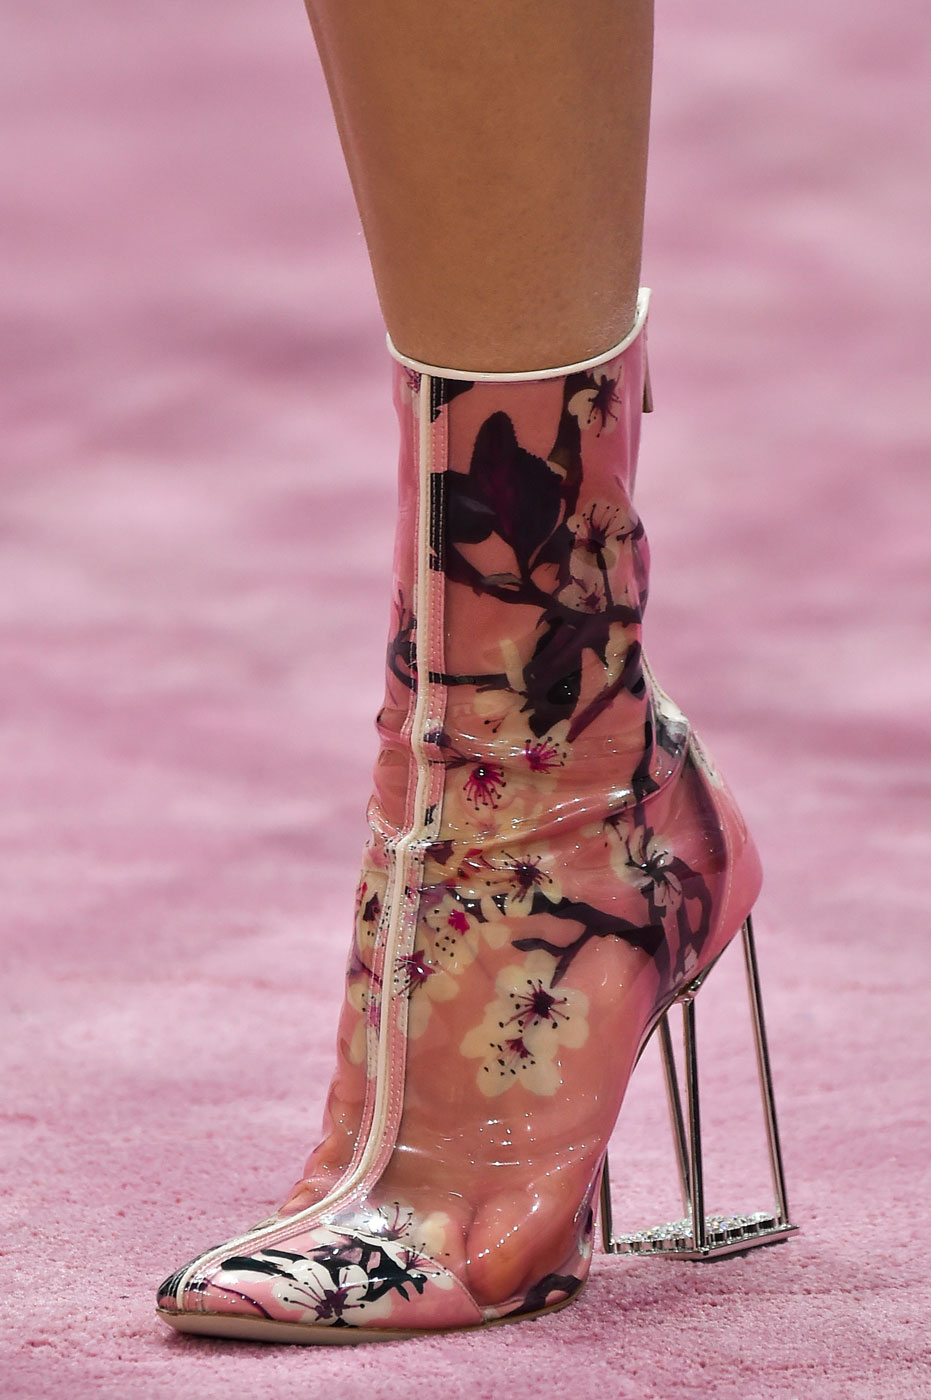 Christian-Dior-fashion-runway-show-close-ups-haute-couture-paris-spring-summer-2015-the-impression-163